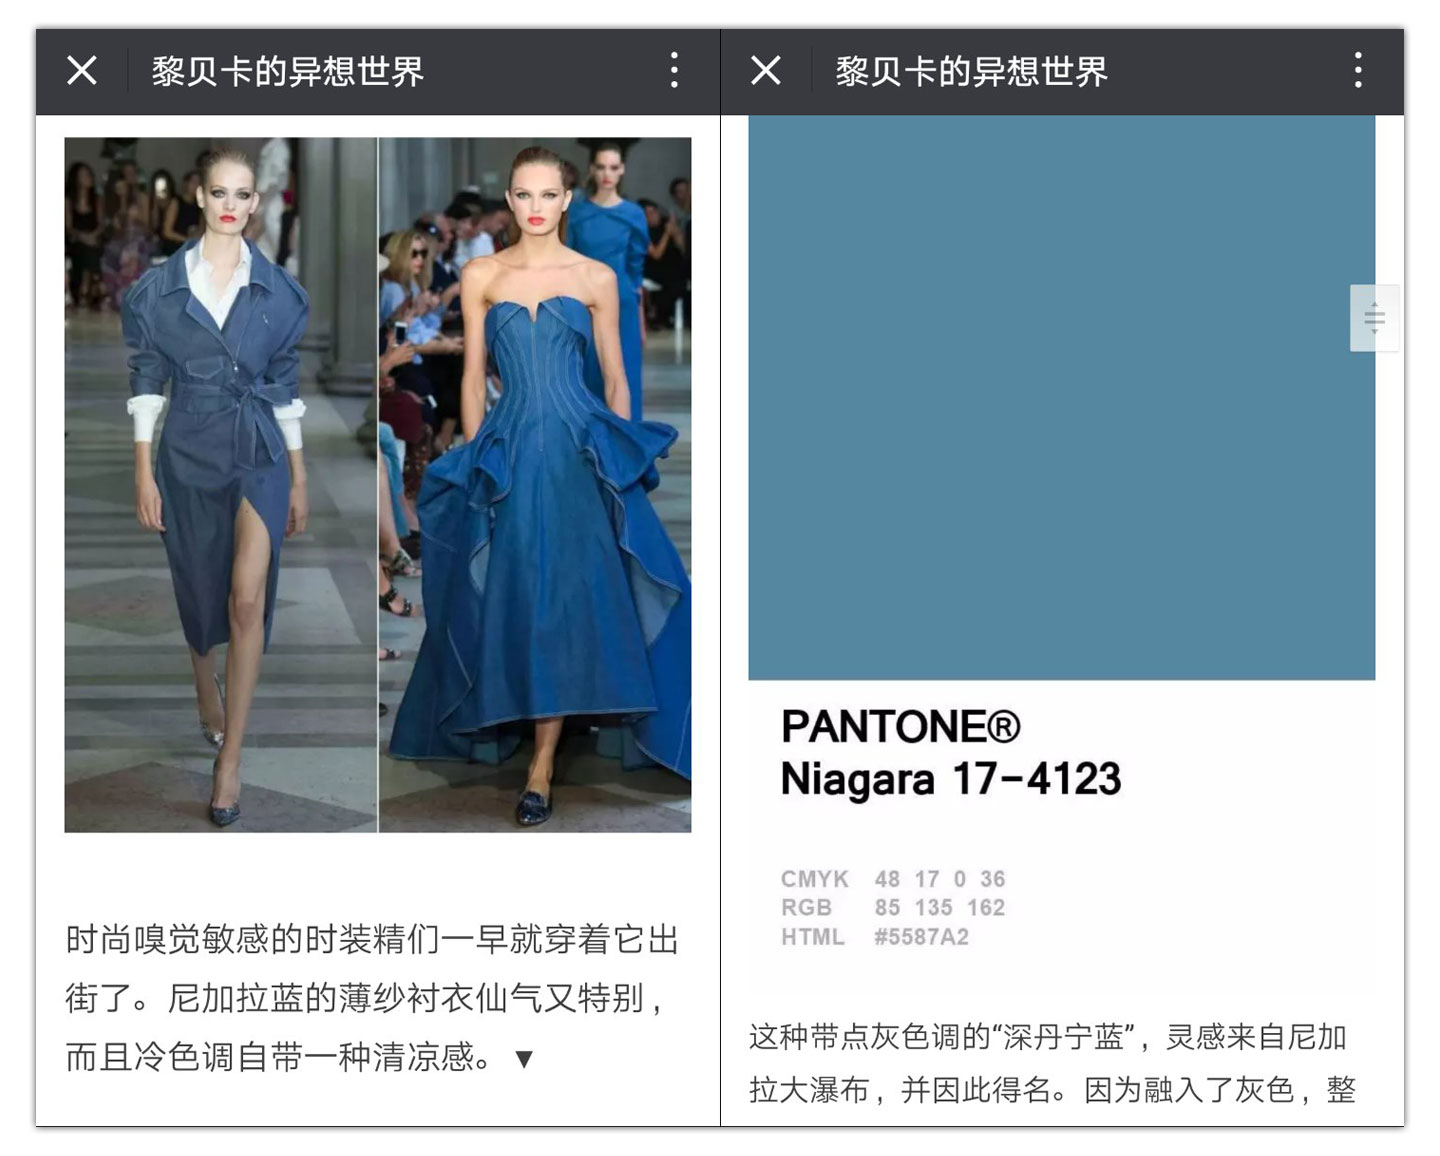 Blue Dresses WeChat Article Becky Li